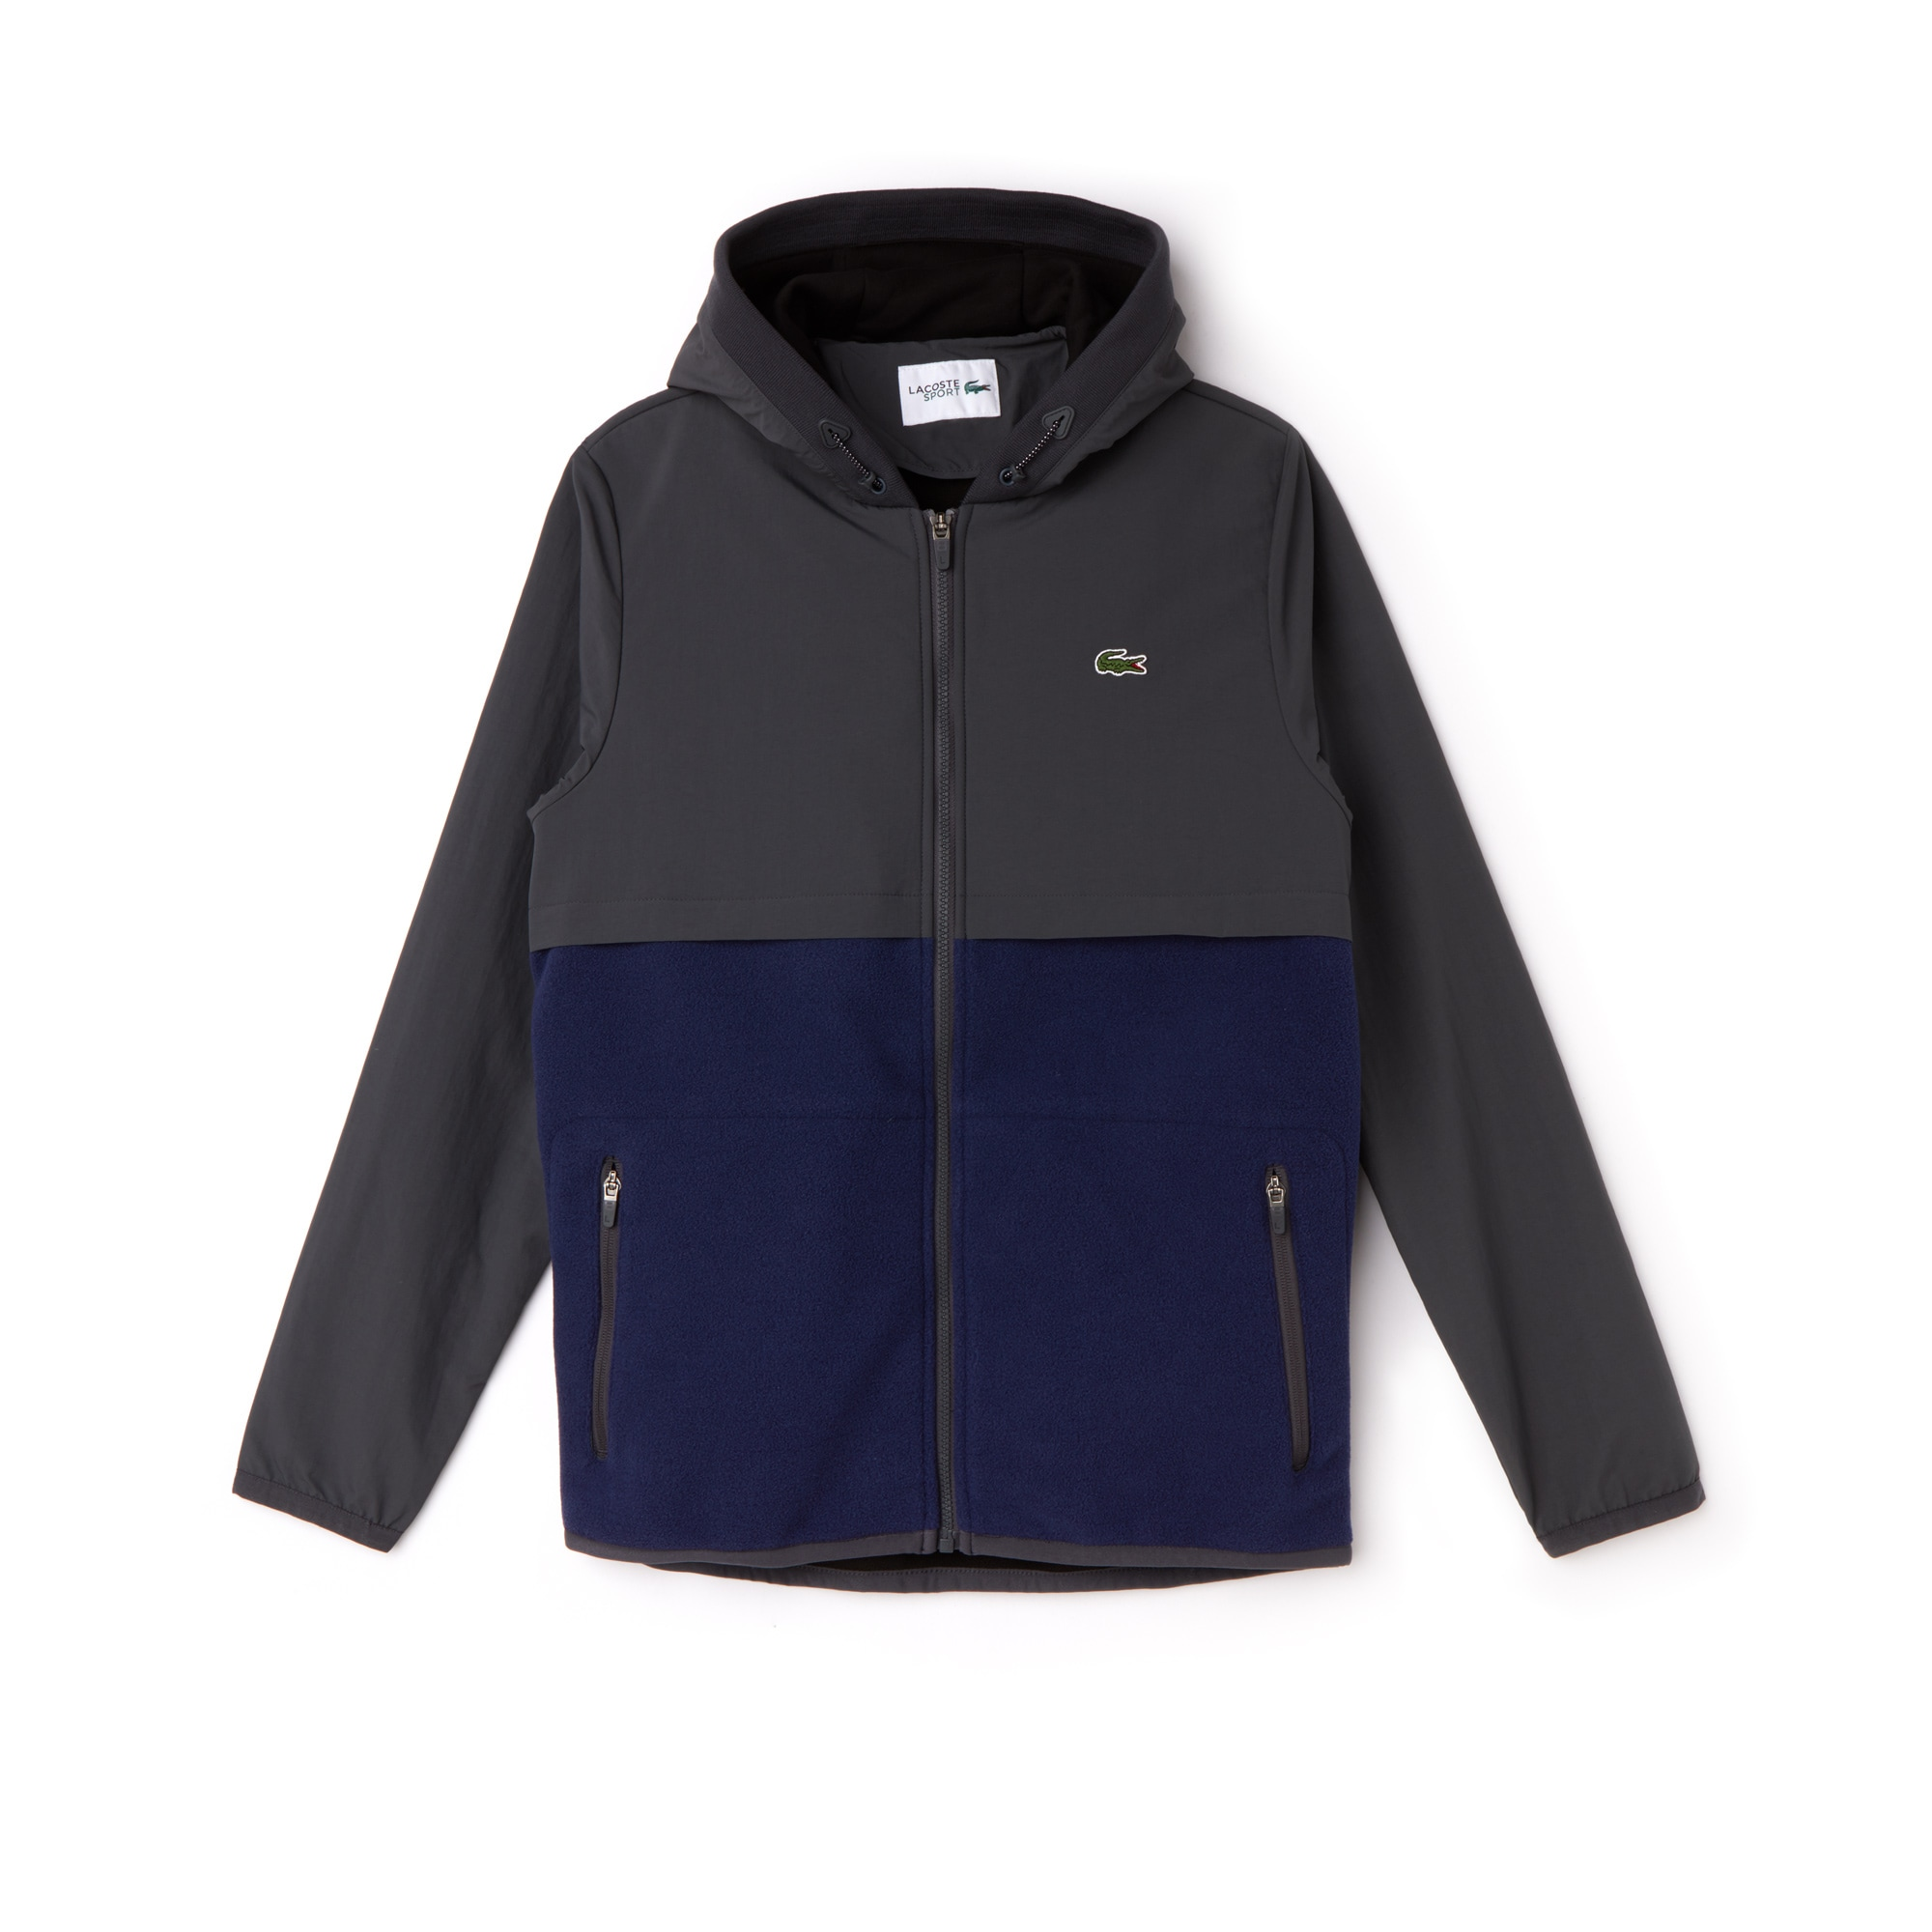 Men's SPORT Hooded Bi-Material Colorblock Tennis Jacket